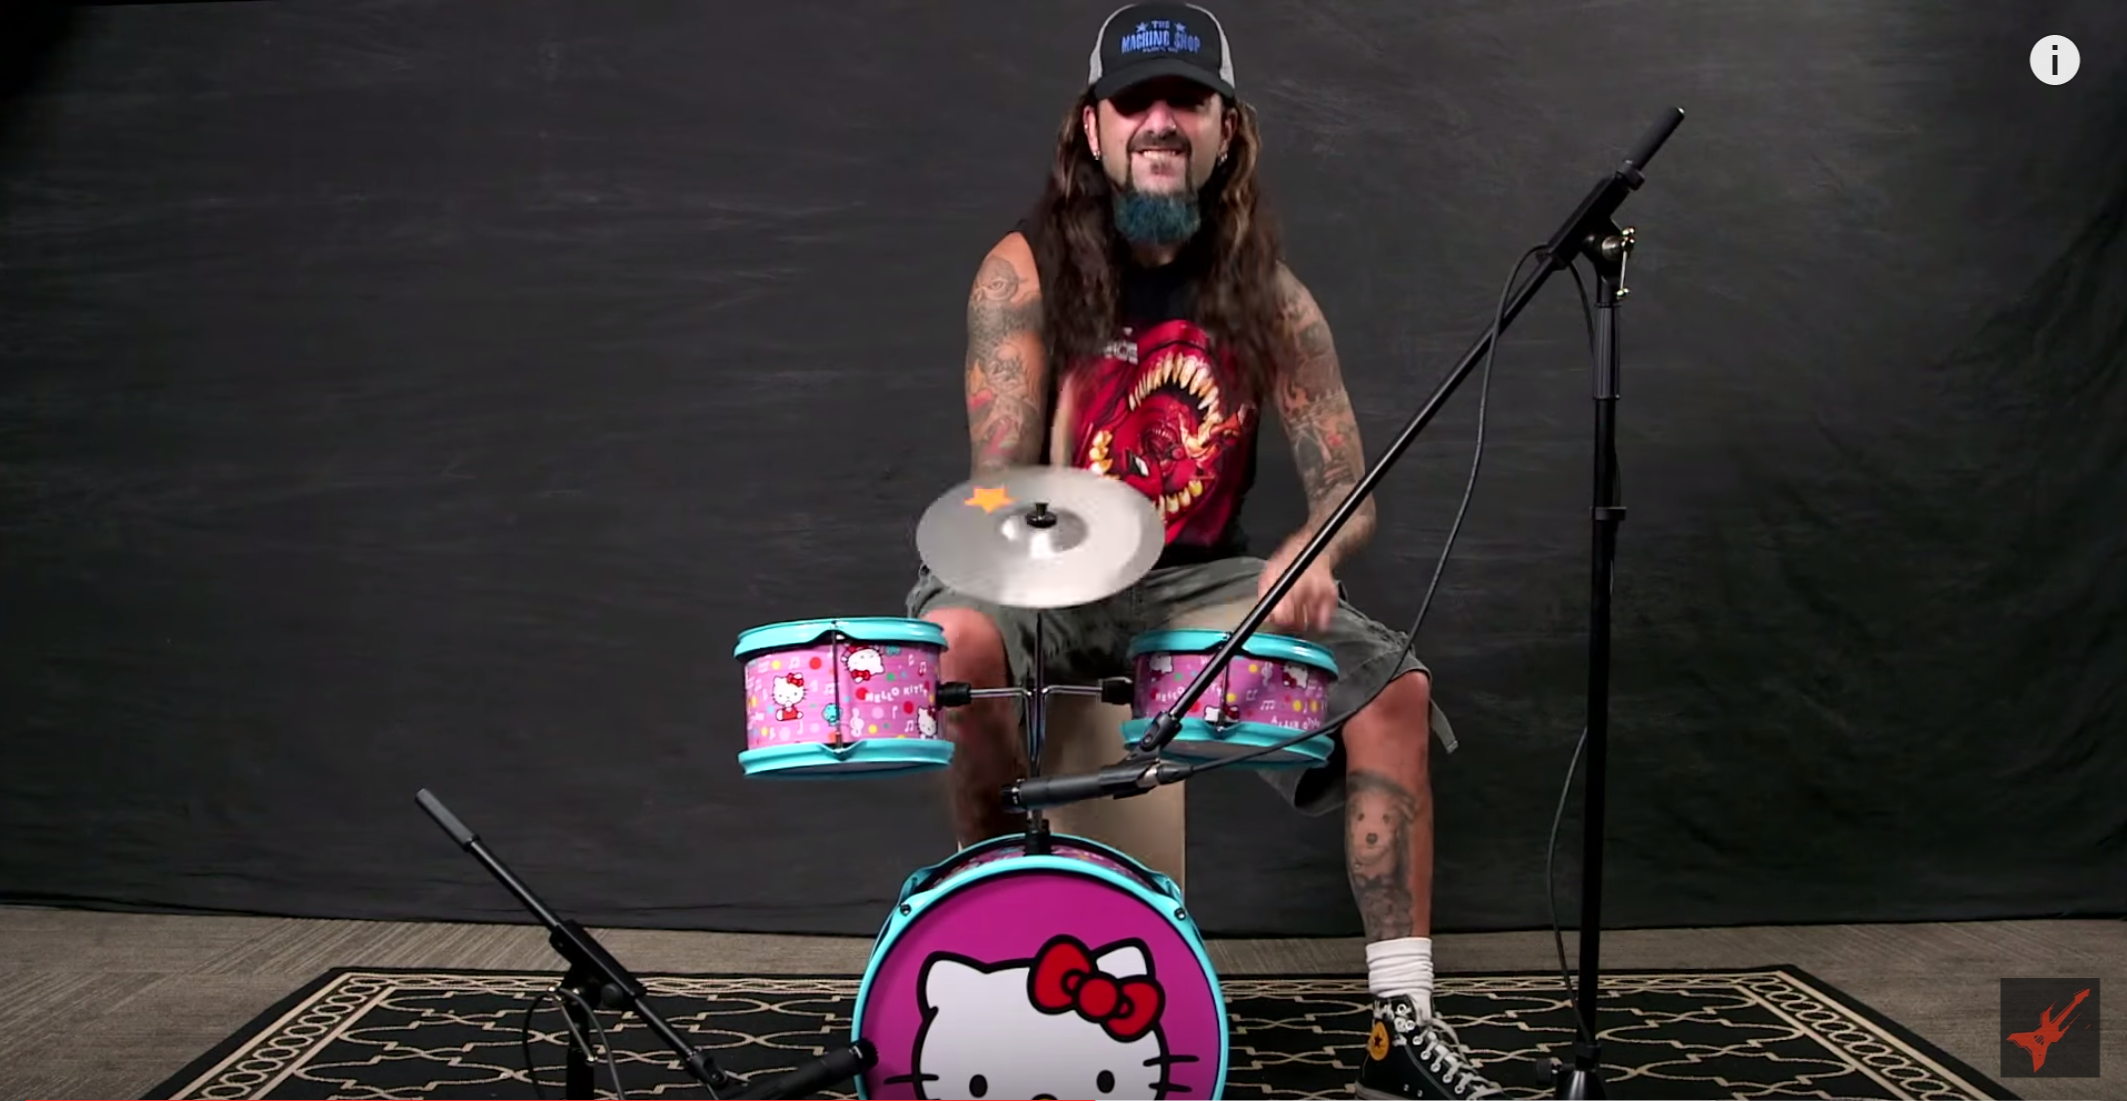 Mike Portnoy: 'Name That Tune' on Hello Kitty Drum Kit